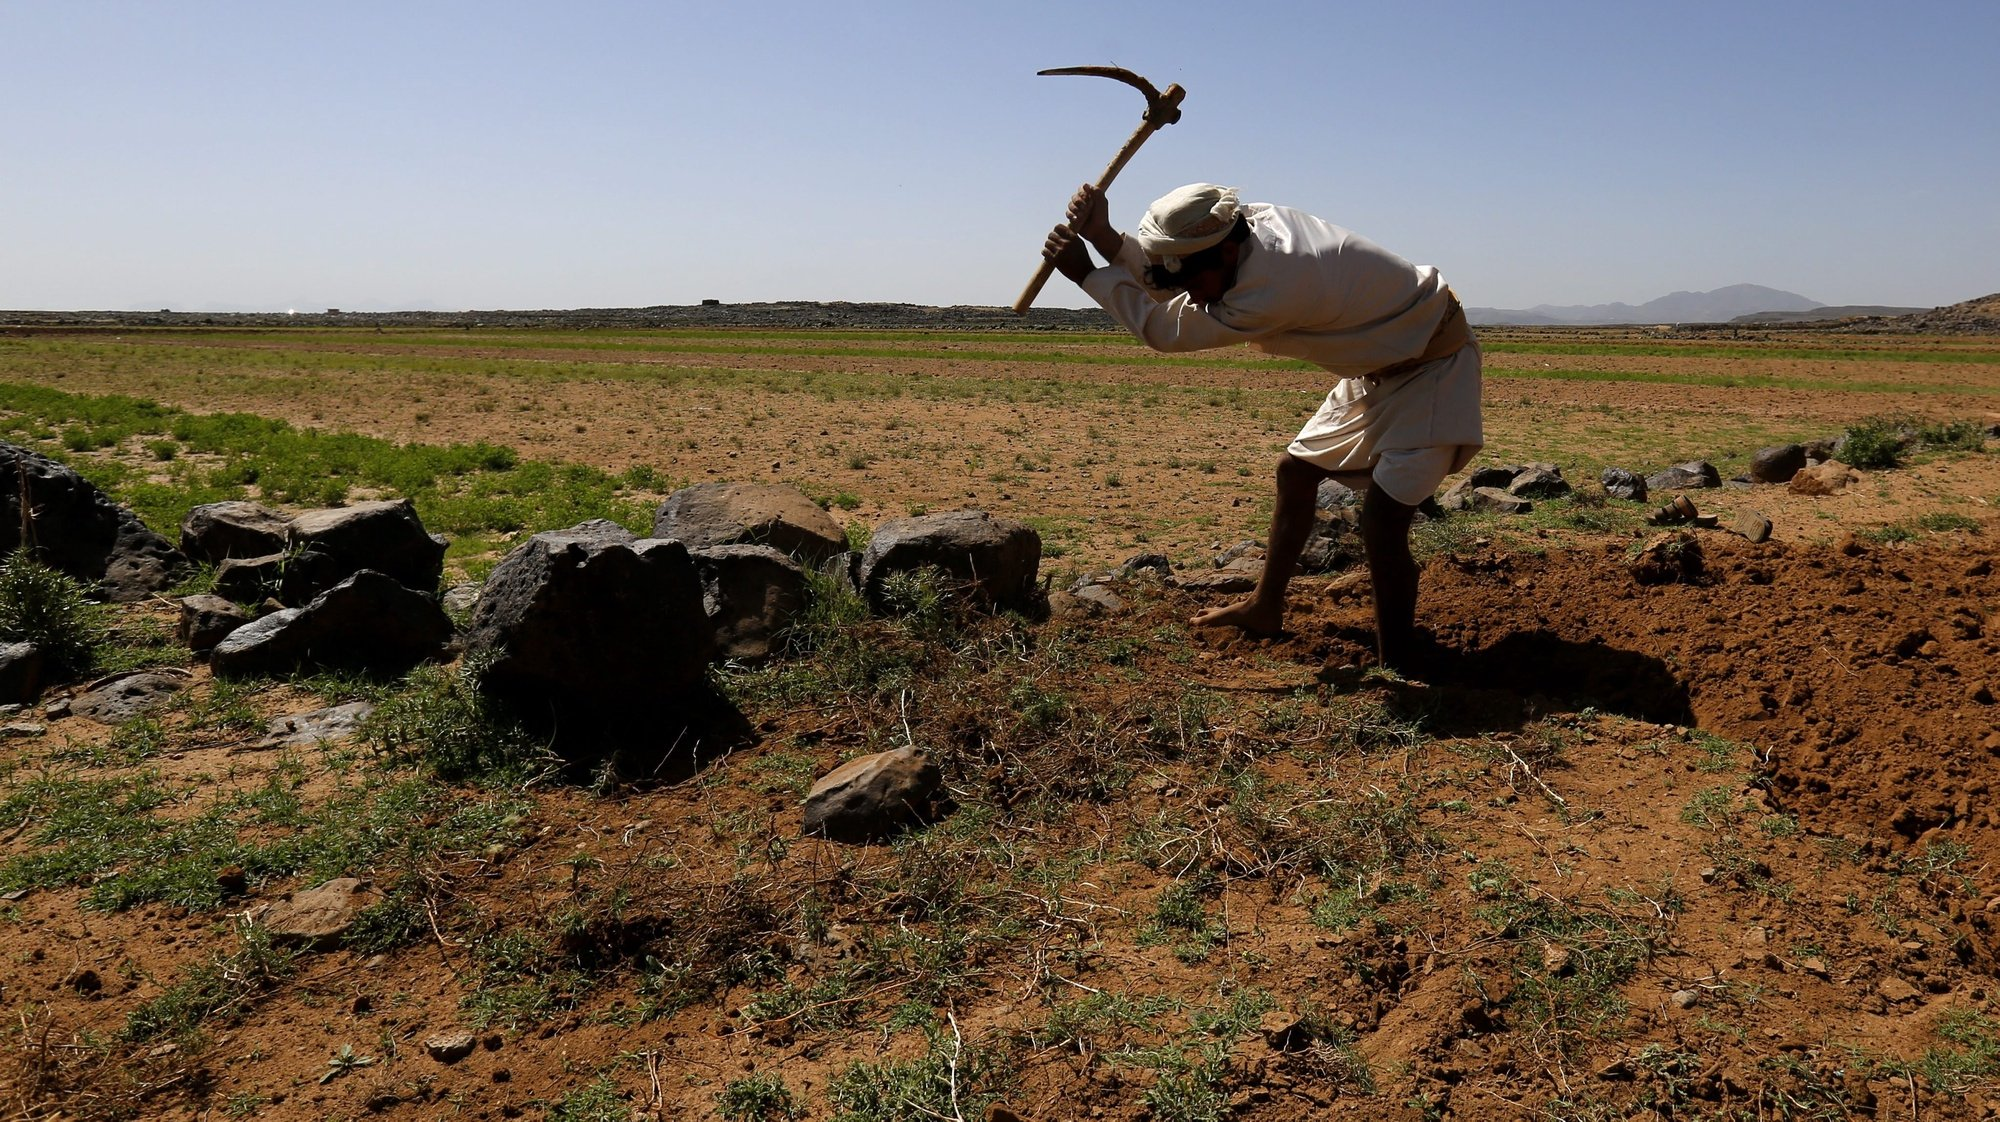 epa05304407 A Yemeni farmer uses a grubber to break the soil of dry farmland near Hamdan district on the outskirts of Sana'a, Yemen, 13 May 2016. According to reports, the Food and Agriculture Organization (FAO) has reported around 14.4 million people, over half of Yemen's population, urgently need food security and livelihood assistance, after more than a year of war between Yemen's Saudi-backed government and Houthi rebels, pushing the war-affected country to the brink of humanitarian disaster.  EPA/YAHYA ARHAB